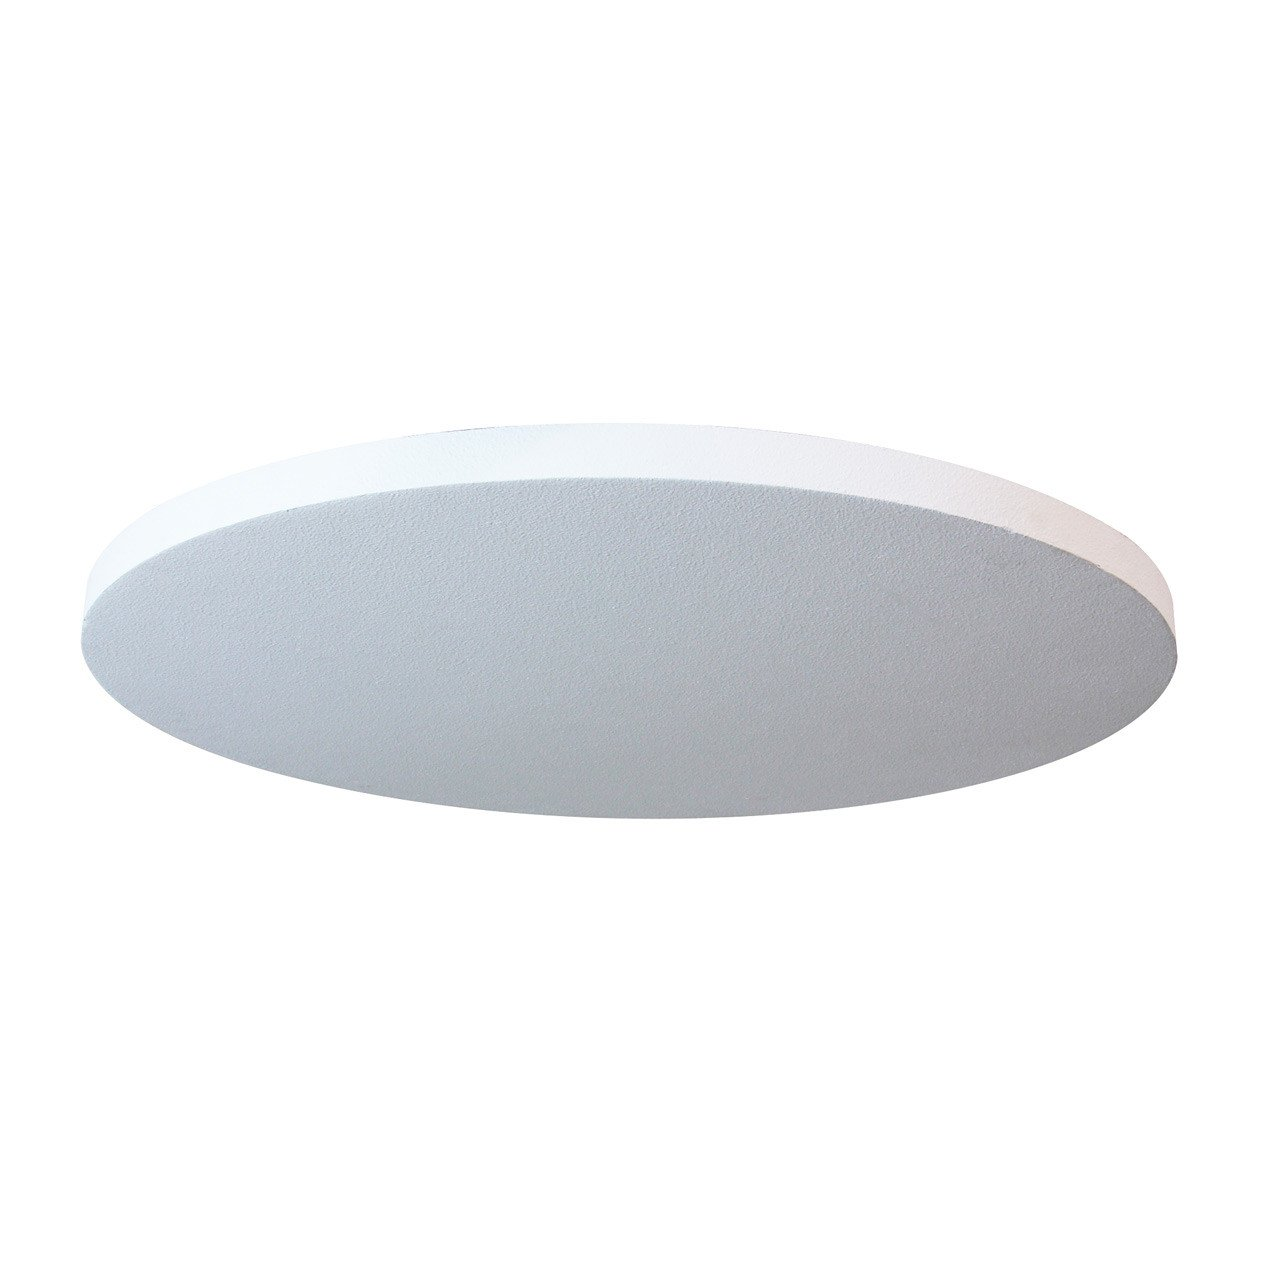 Ceiling Treatments - Primacoustic Cirrus 36 - Ceiling Acoustic Panel (914 X 914 X 38mm)